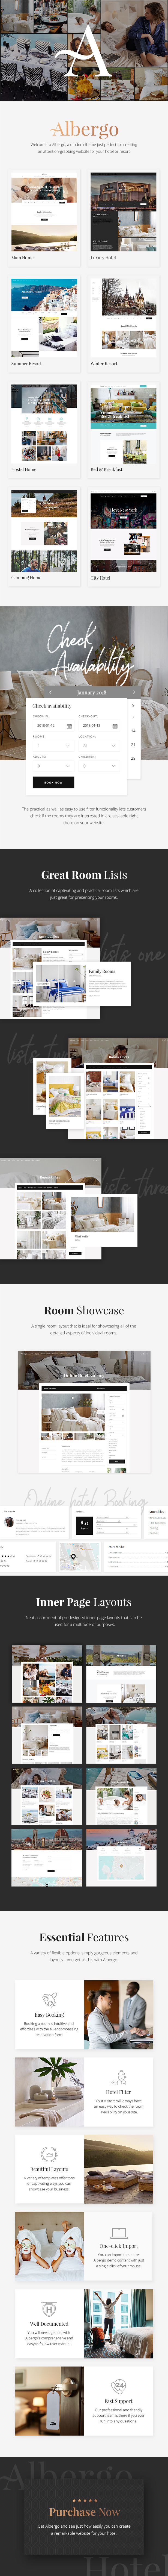 Albergo - Hotel and Accommodation Booking Theme - 1